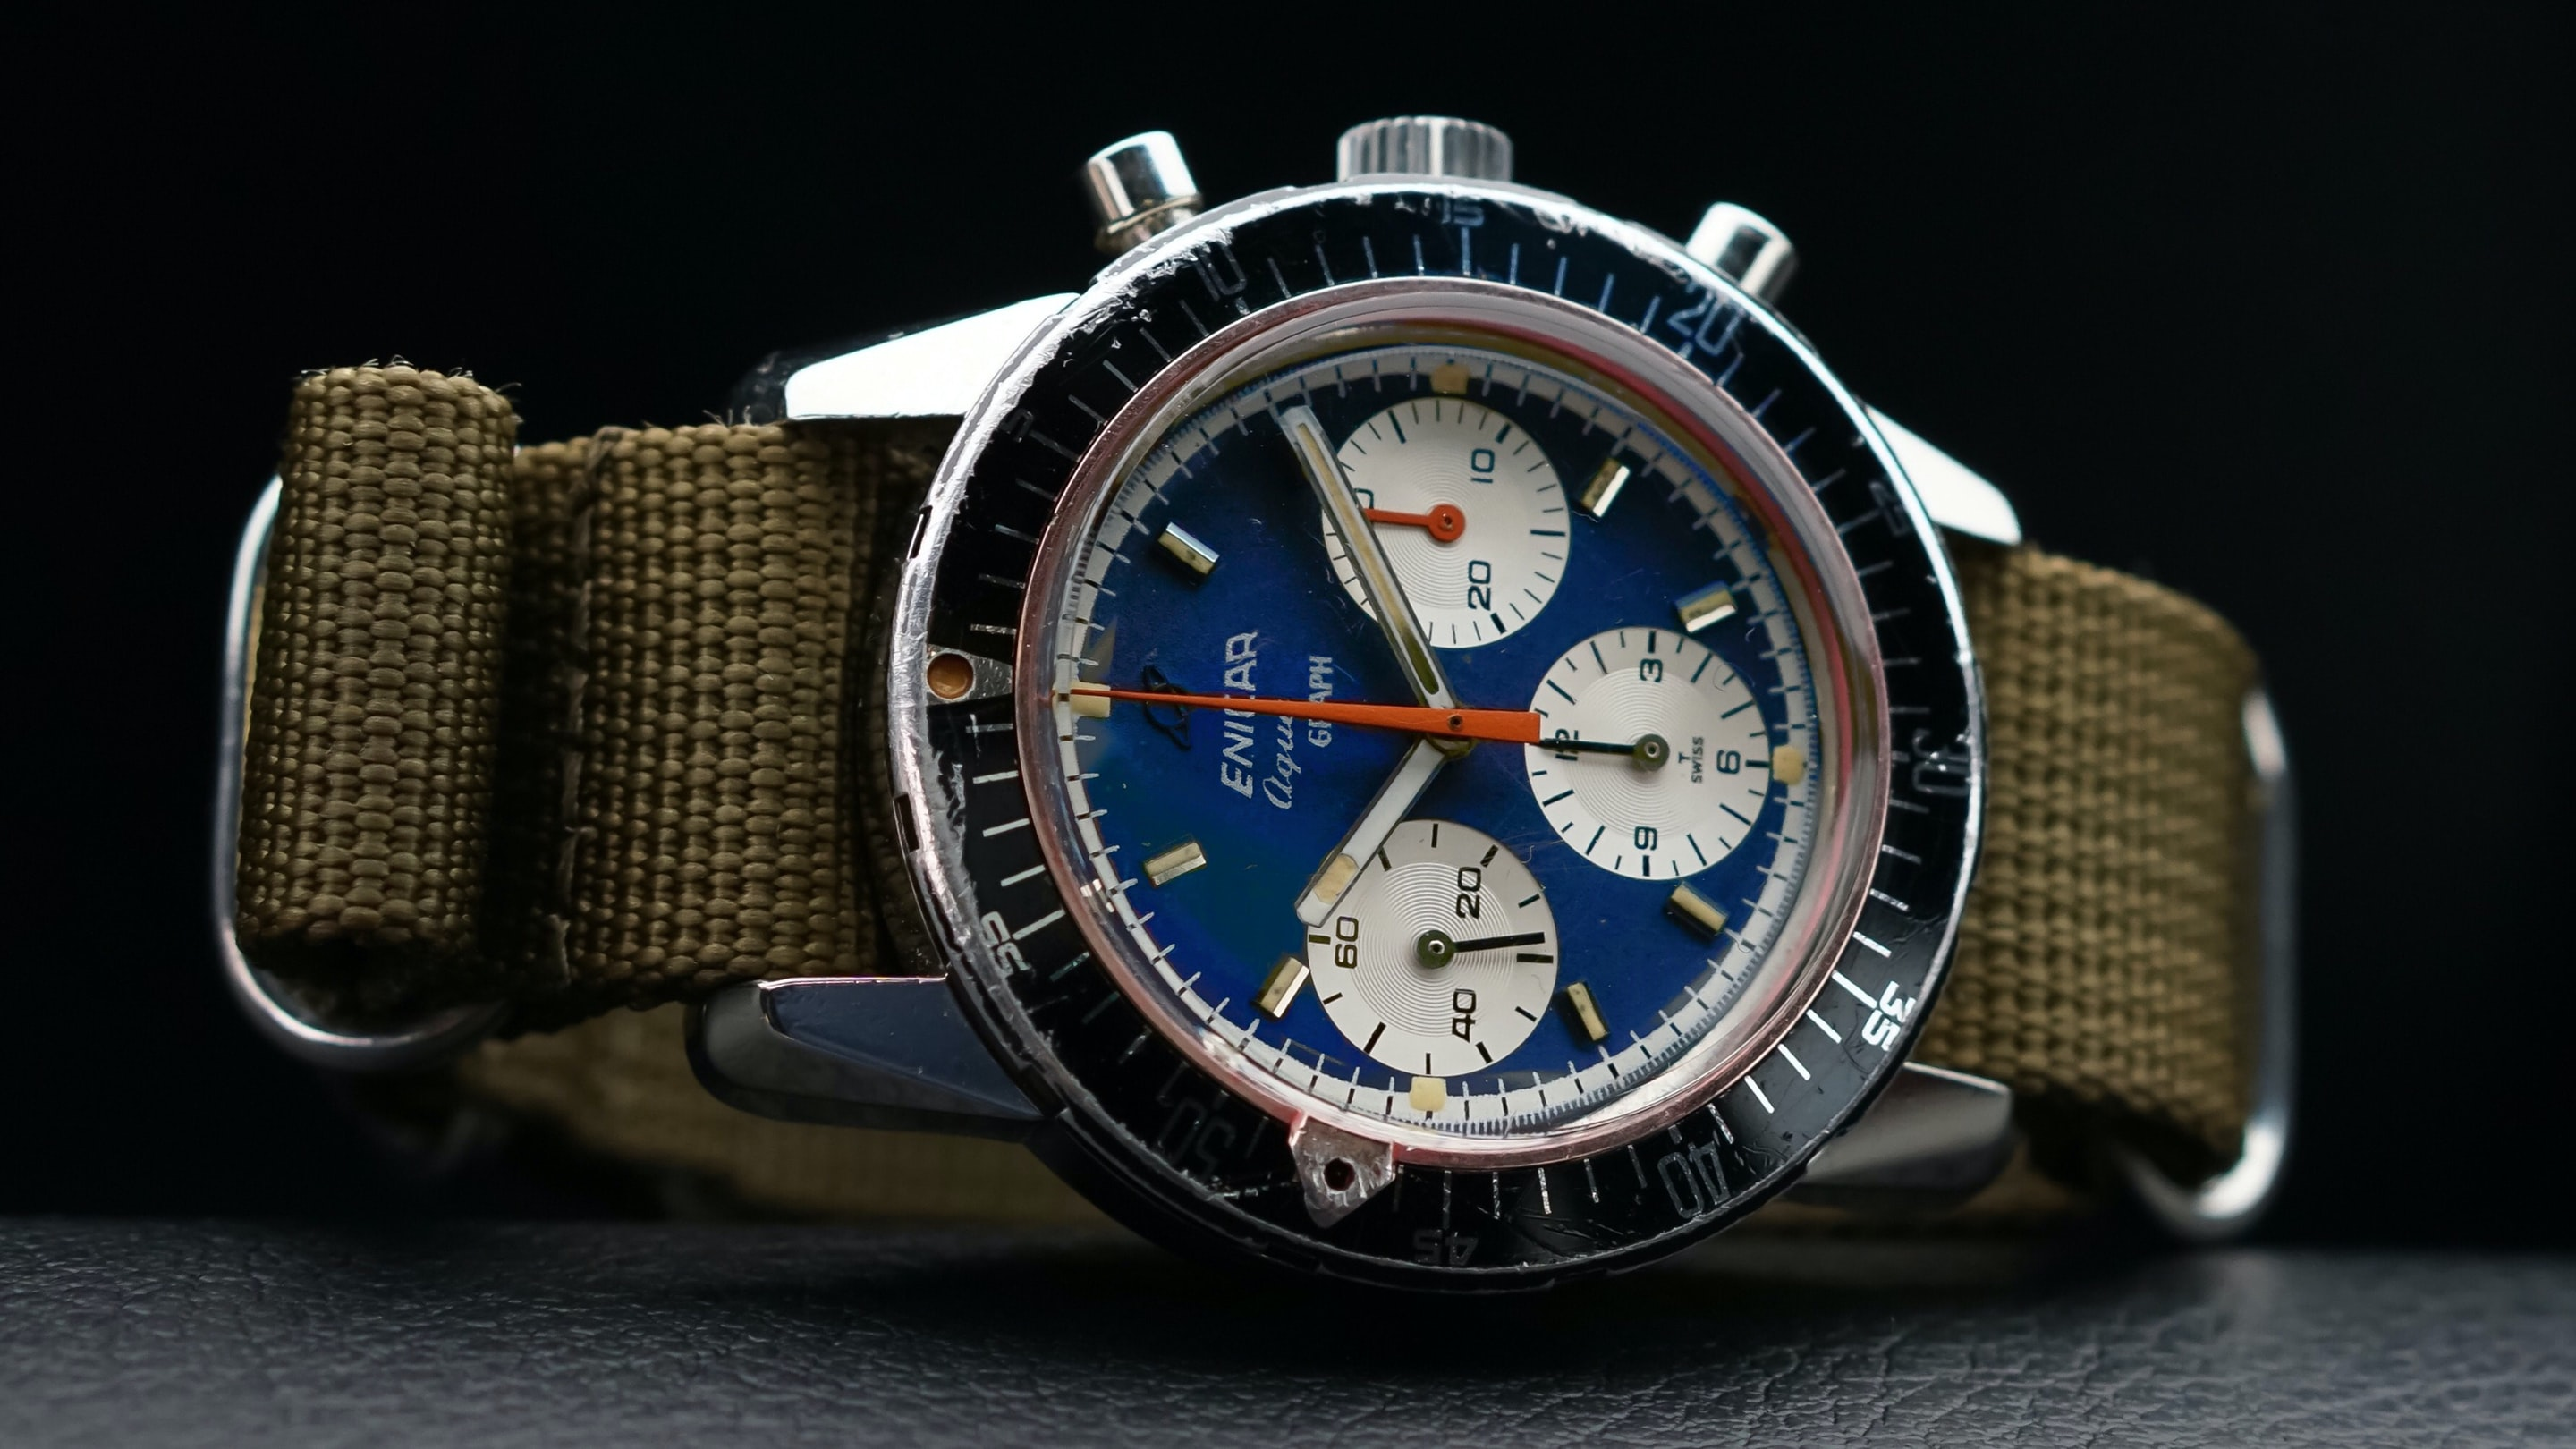 Bring a Loupe: Beautiful Vintage Chronographs From Mido, Gallet, Heuer, And More Found On EBay